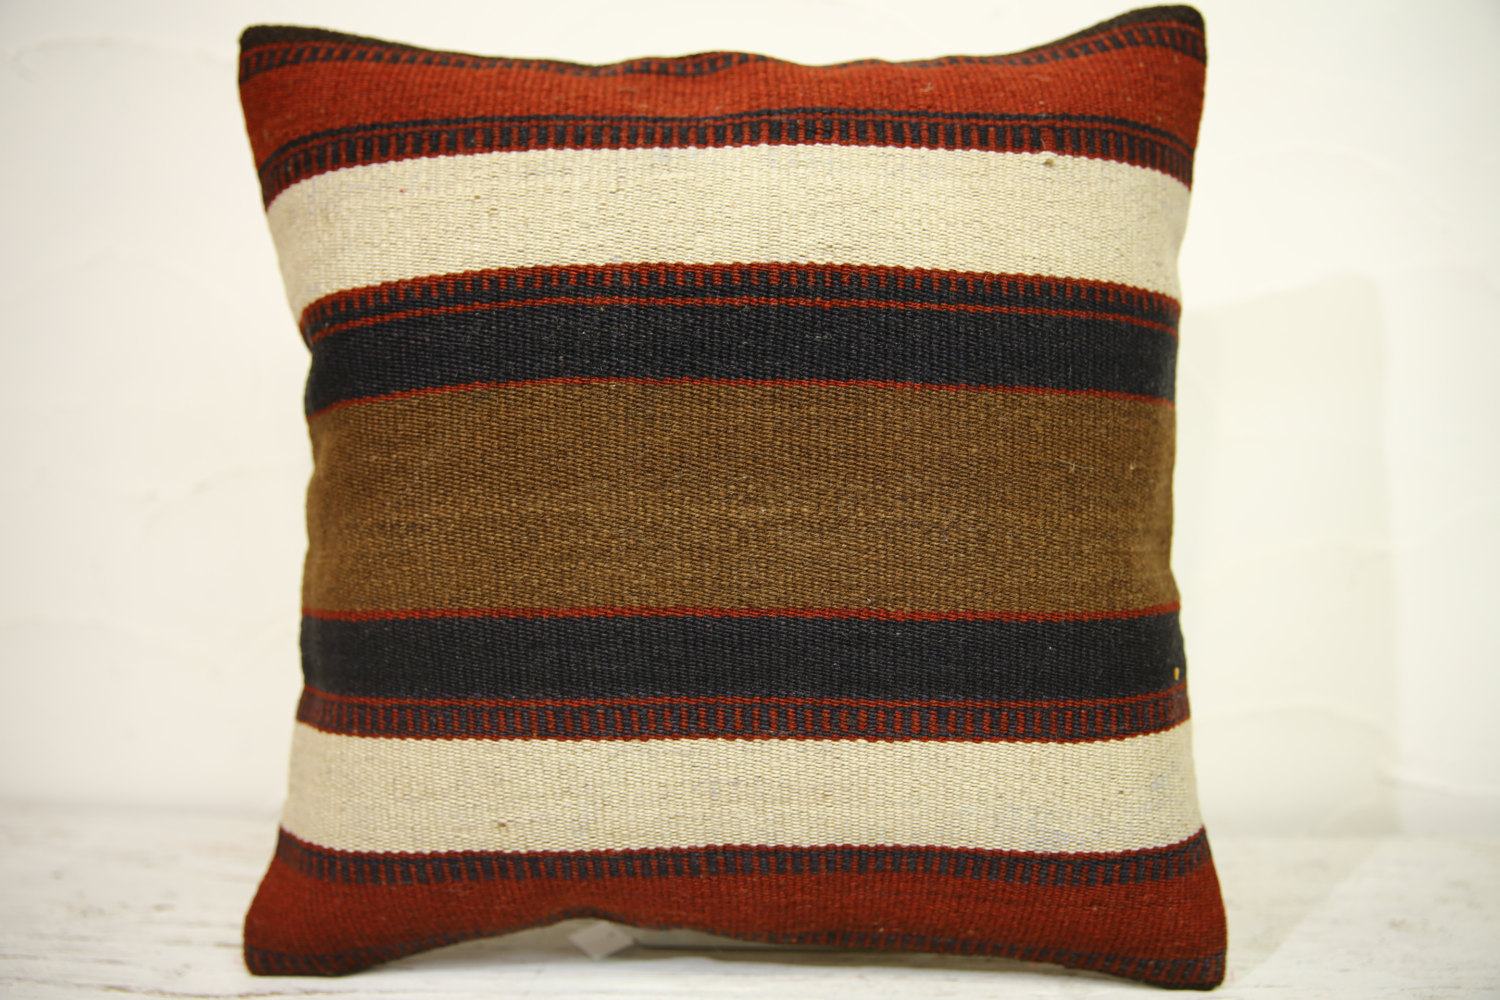 Kilim Pillows | 16x16 | Turkish pillows | 1266 | Accent Pillow,Decorative Pillow